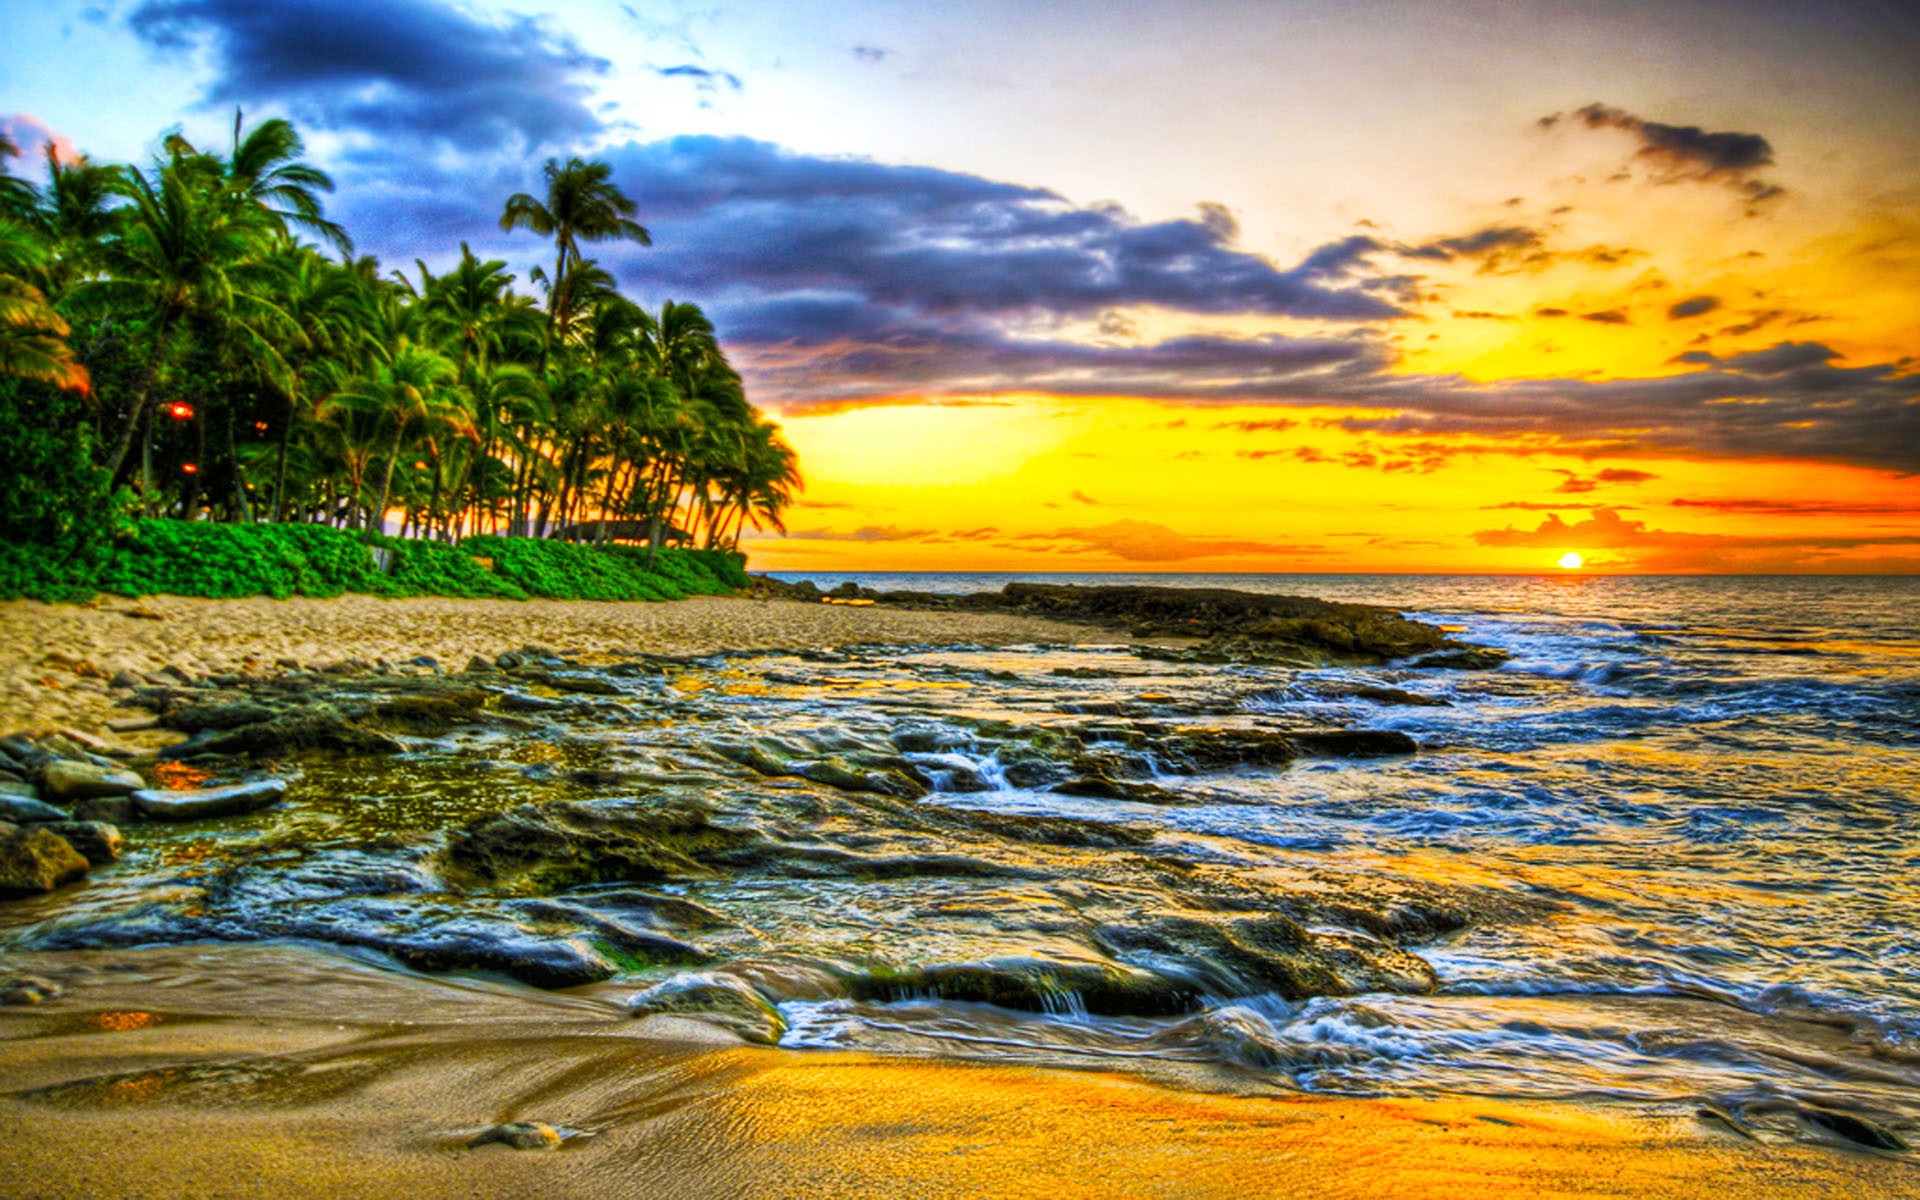 Beach Free Ipad Wallpapers: Nice Wallpapers (63+ Images